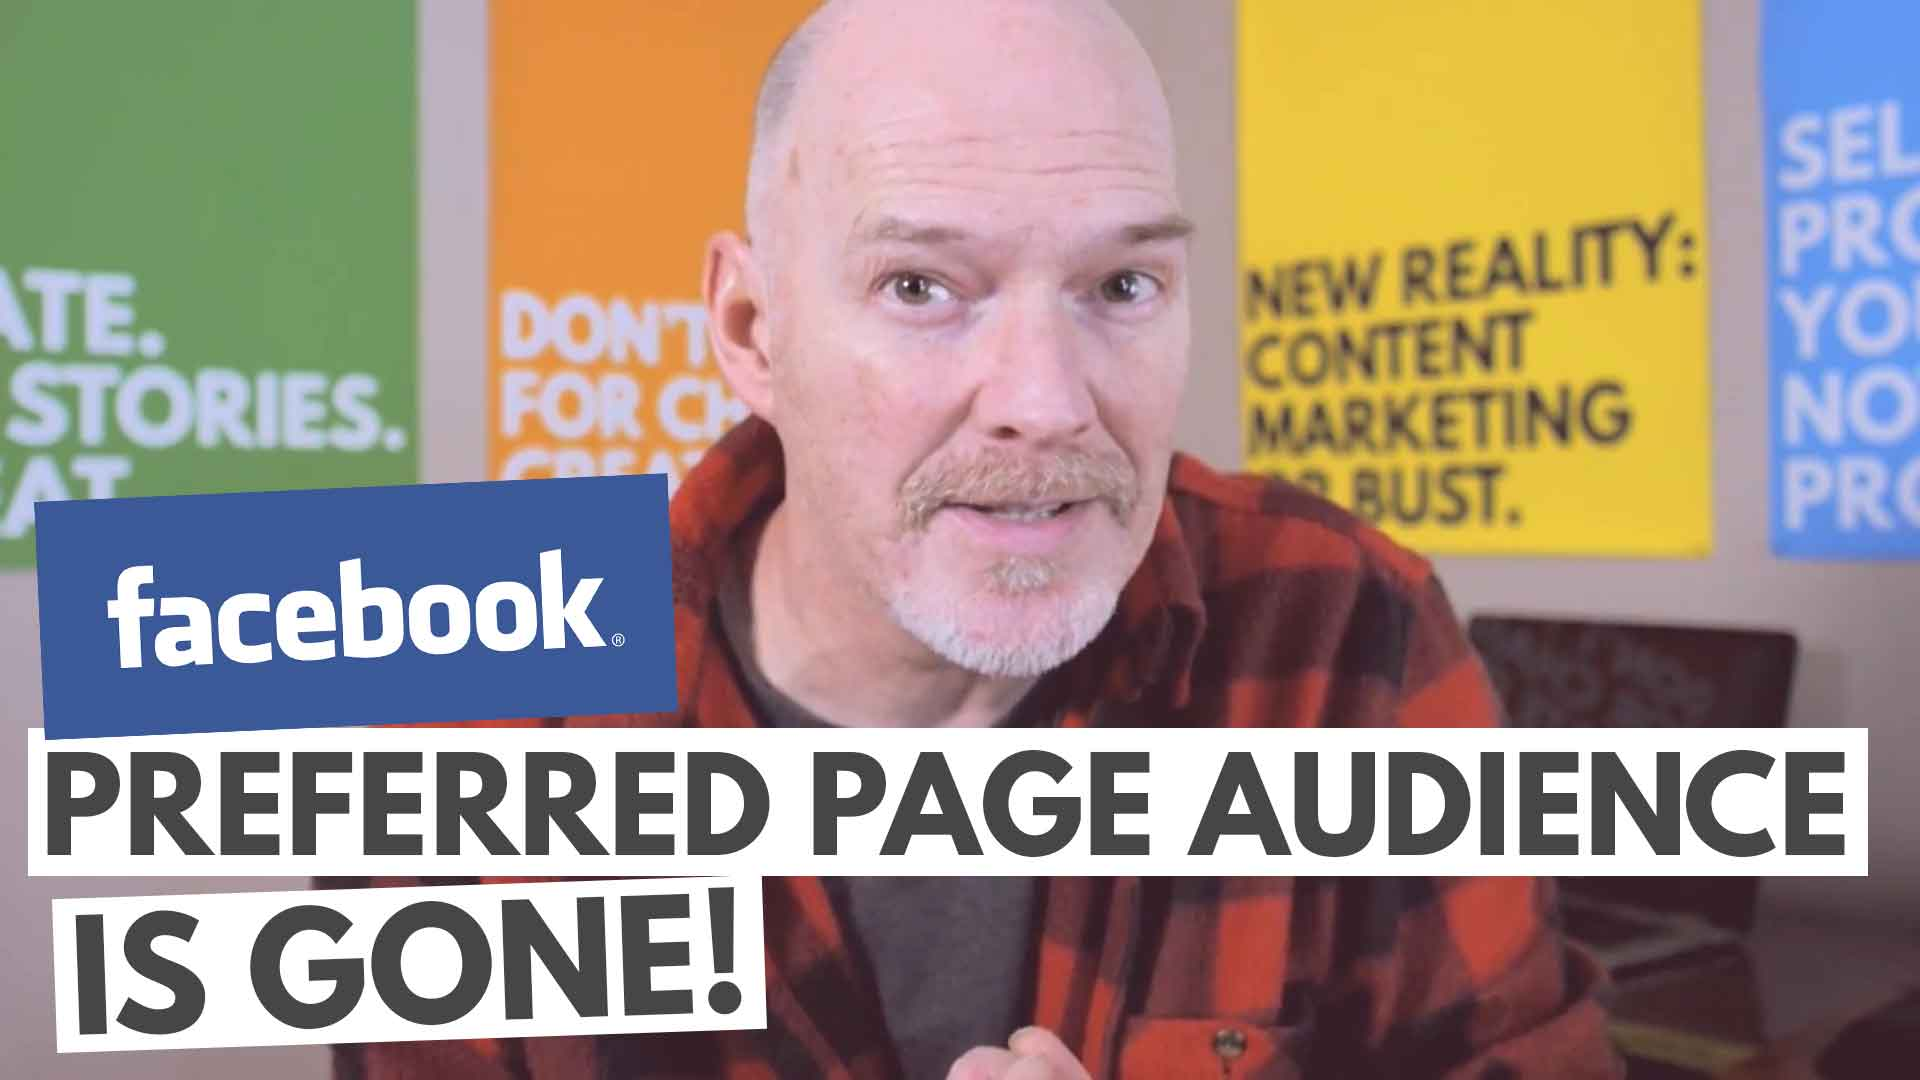 Facebook eliminates Preferred Page Audience setting